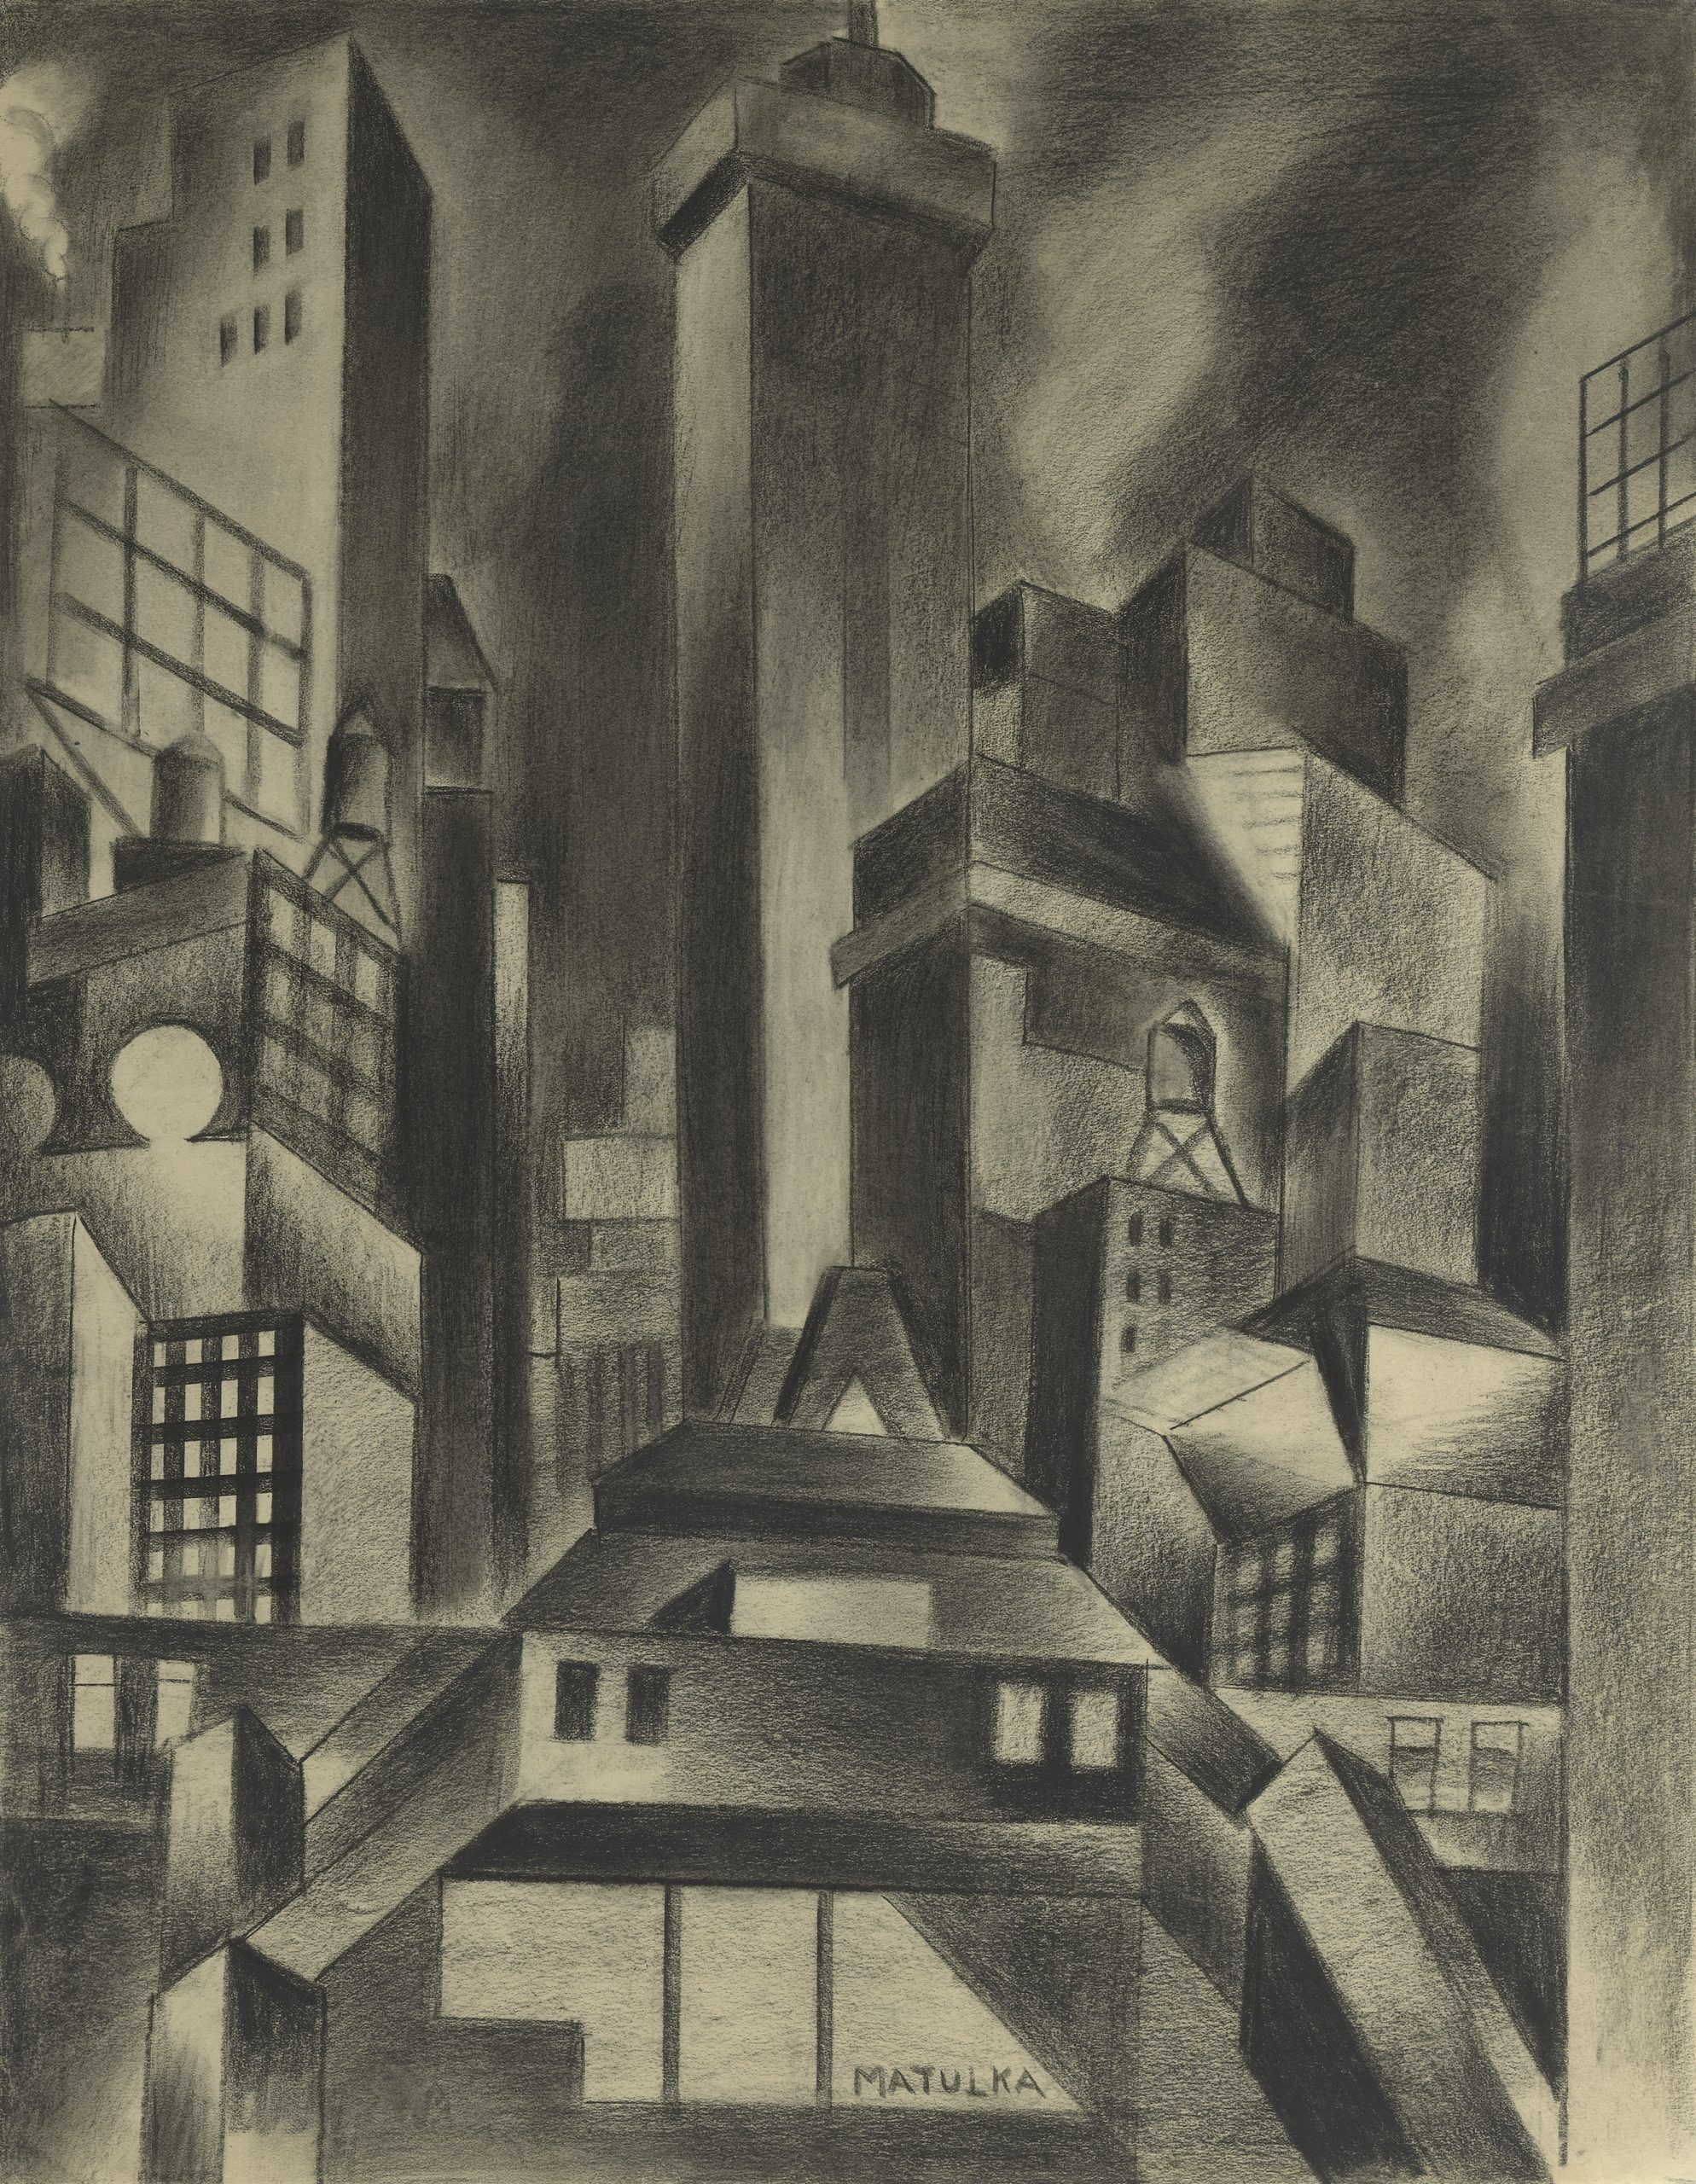 A cubist New York cityscape of tightly composed skyscrapers, an elevated train station, billboards, and water towers.